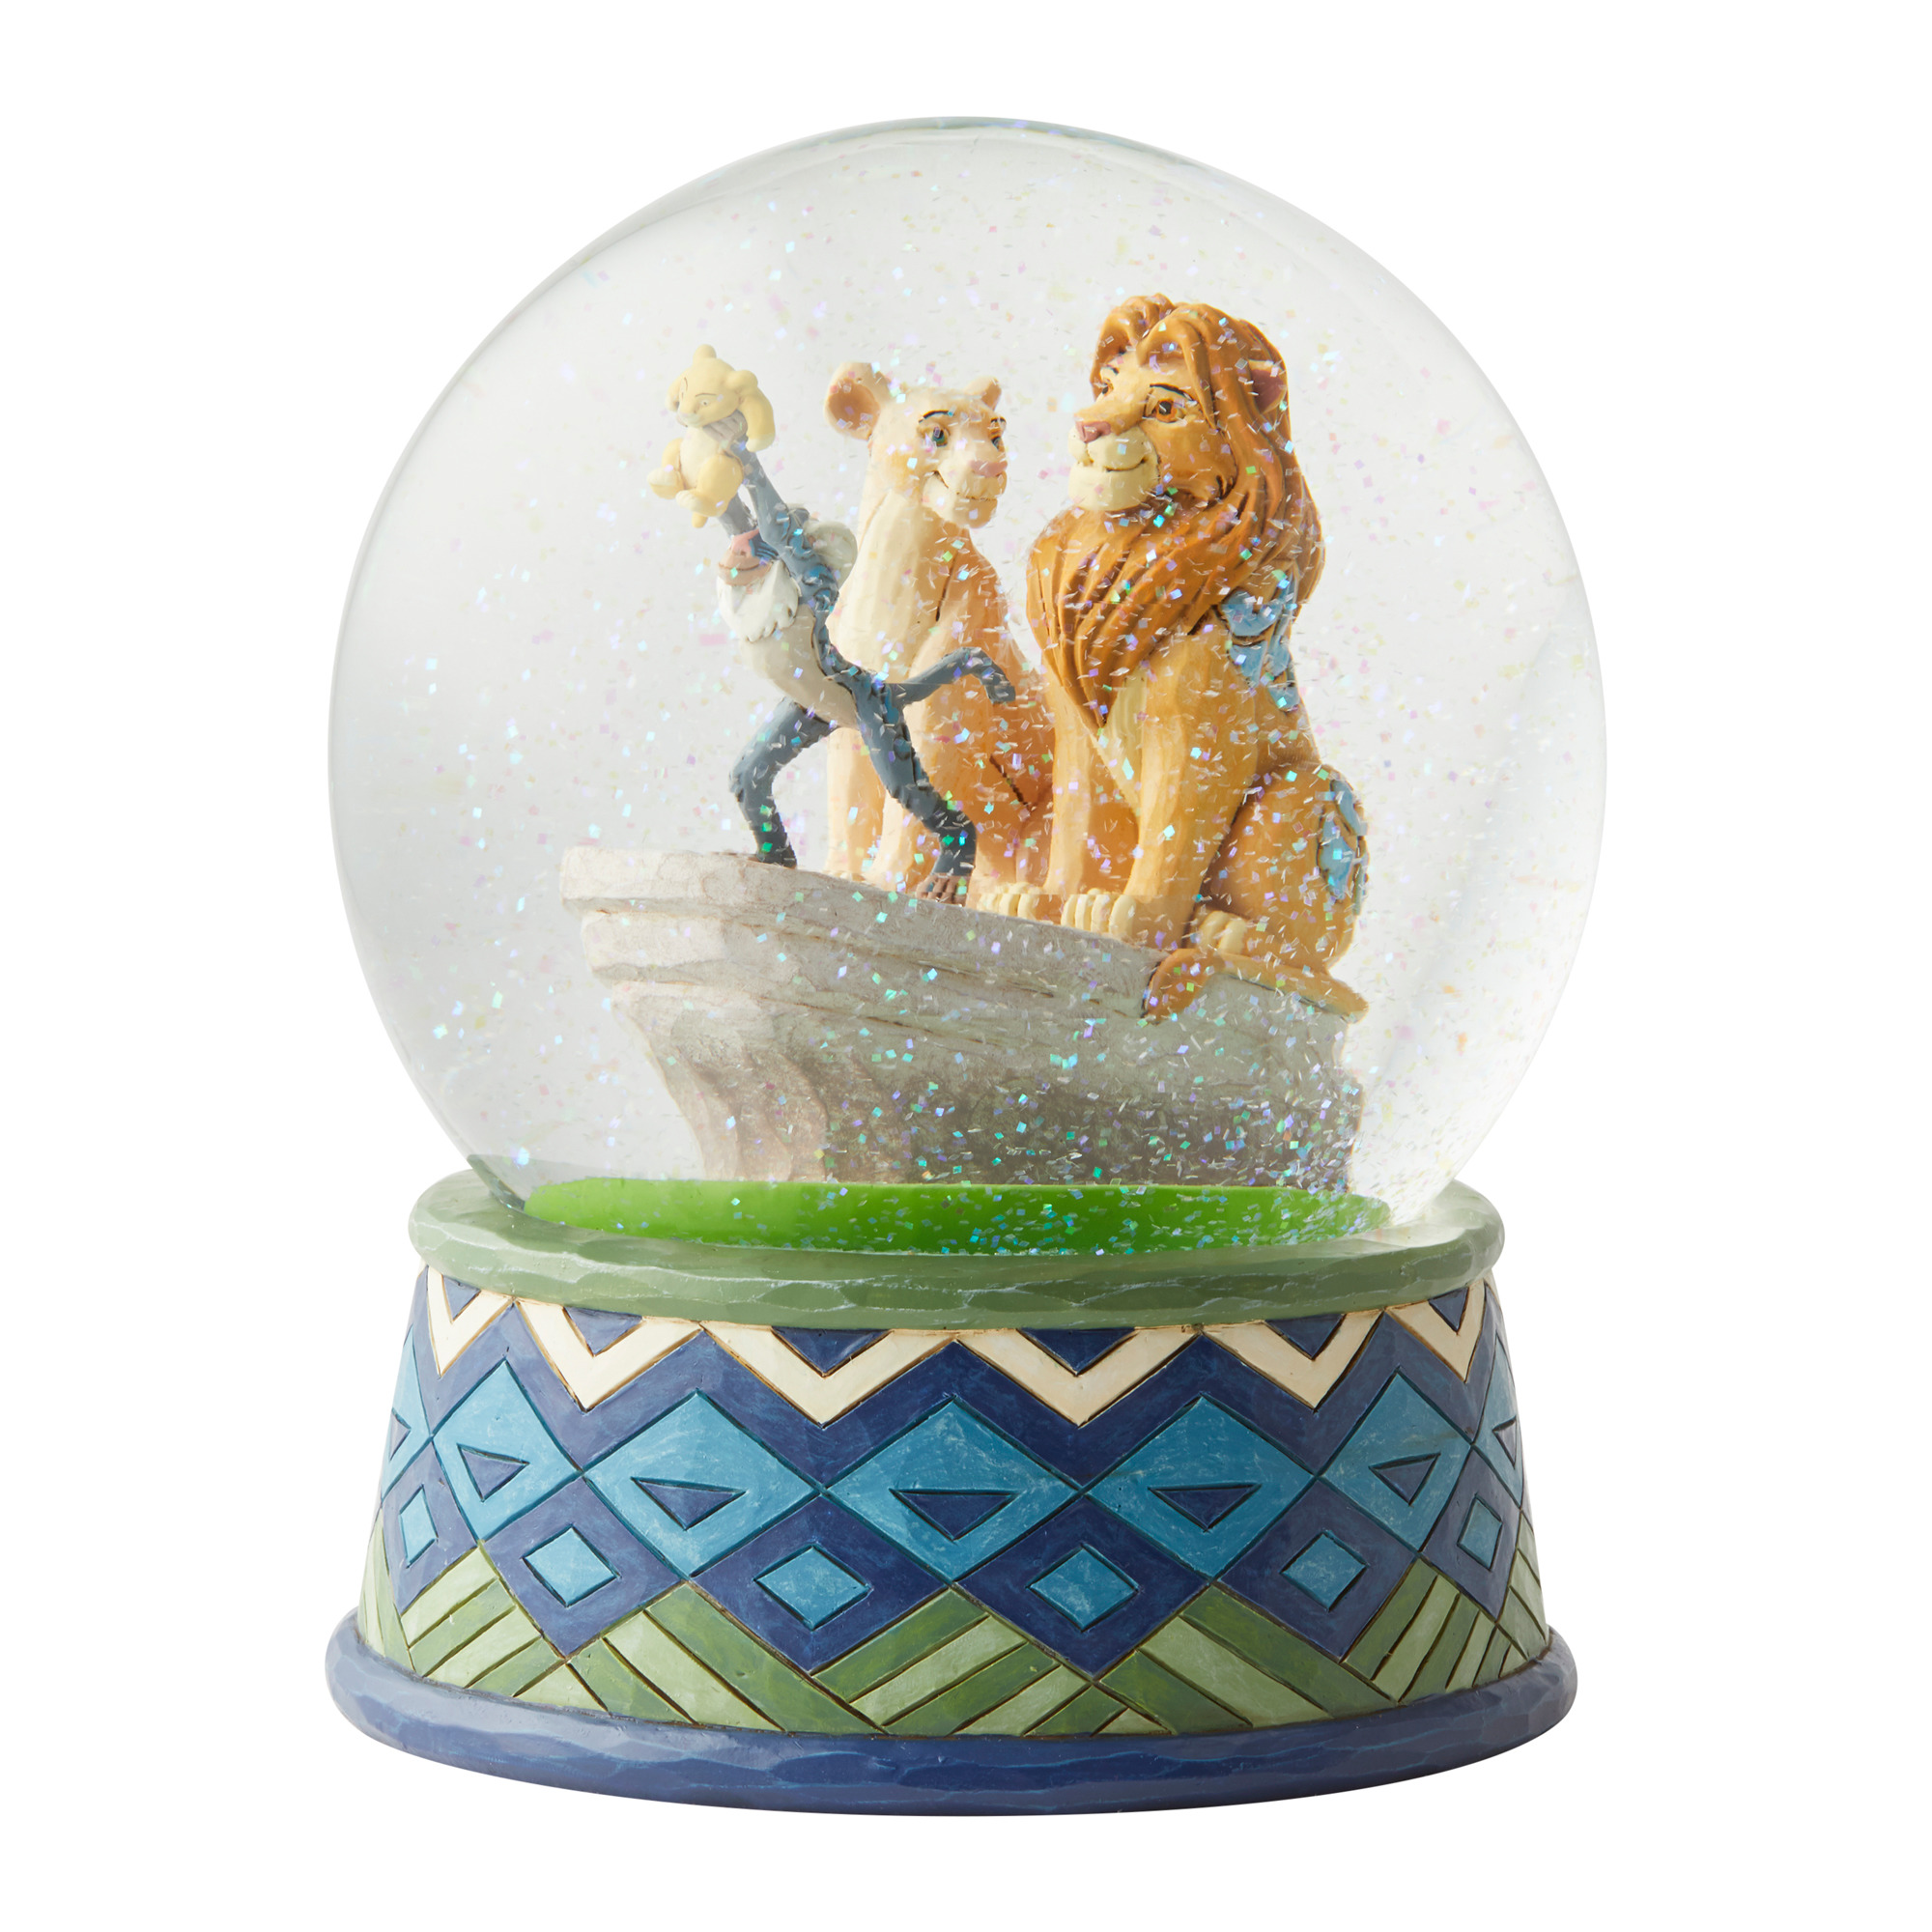 6007083 Lion King Waterball